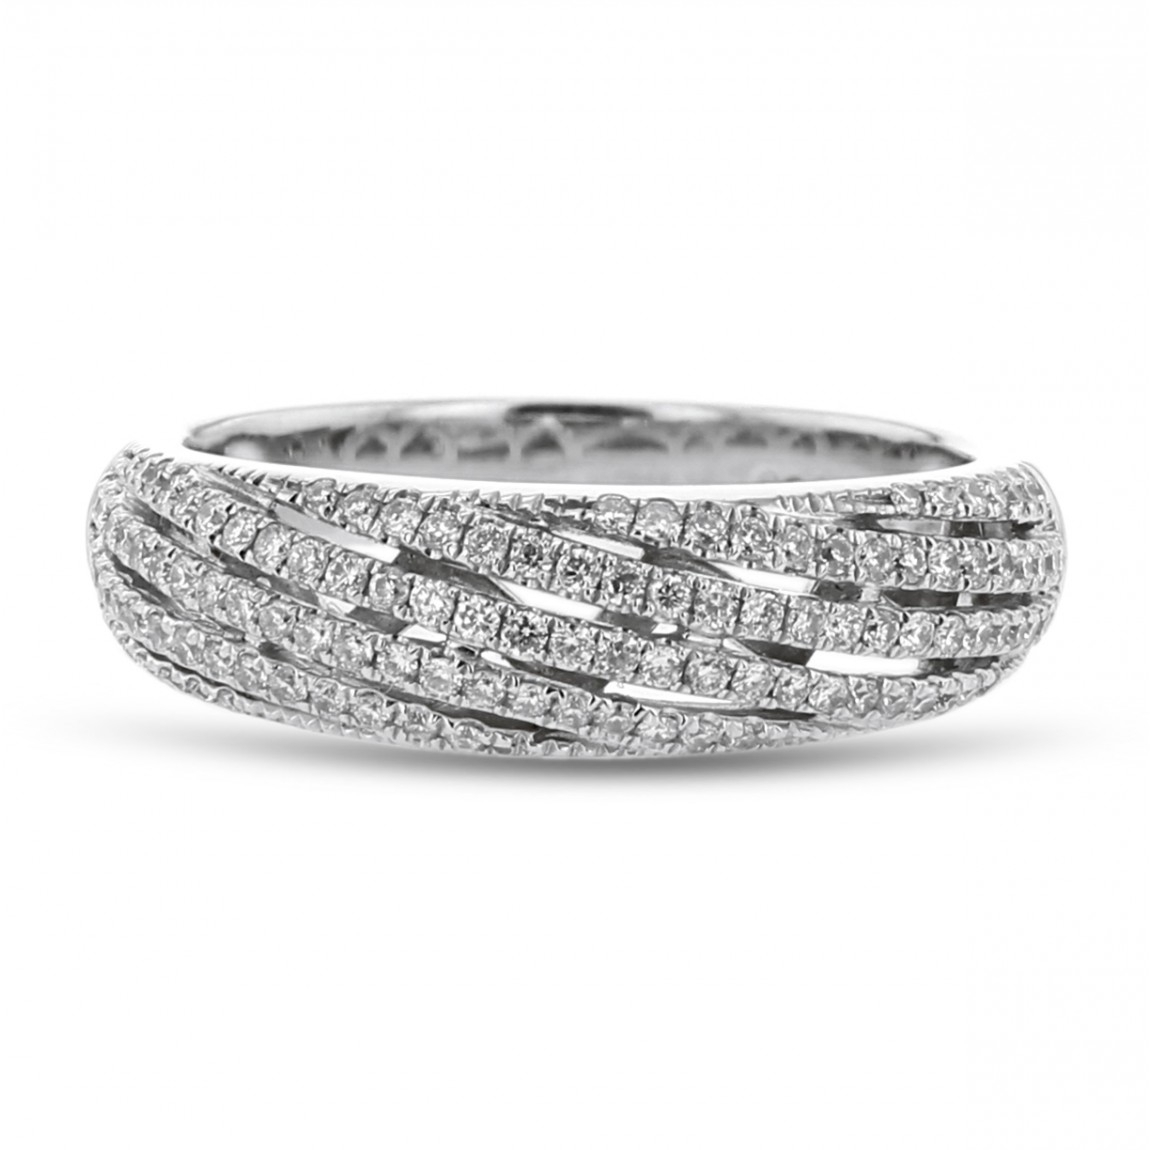 Diamond Fashion Band, Pavé Waves, 18k White Gold, (View 10 of 25)